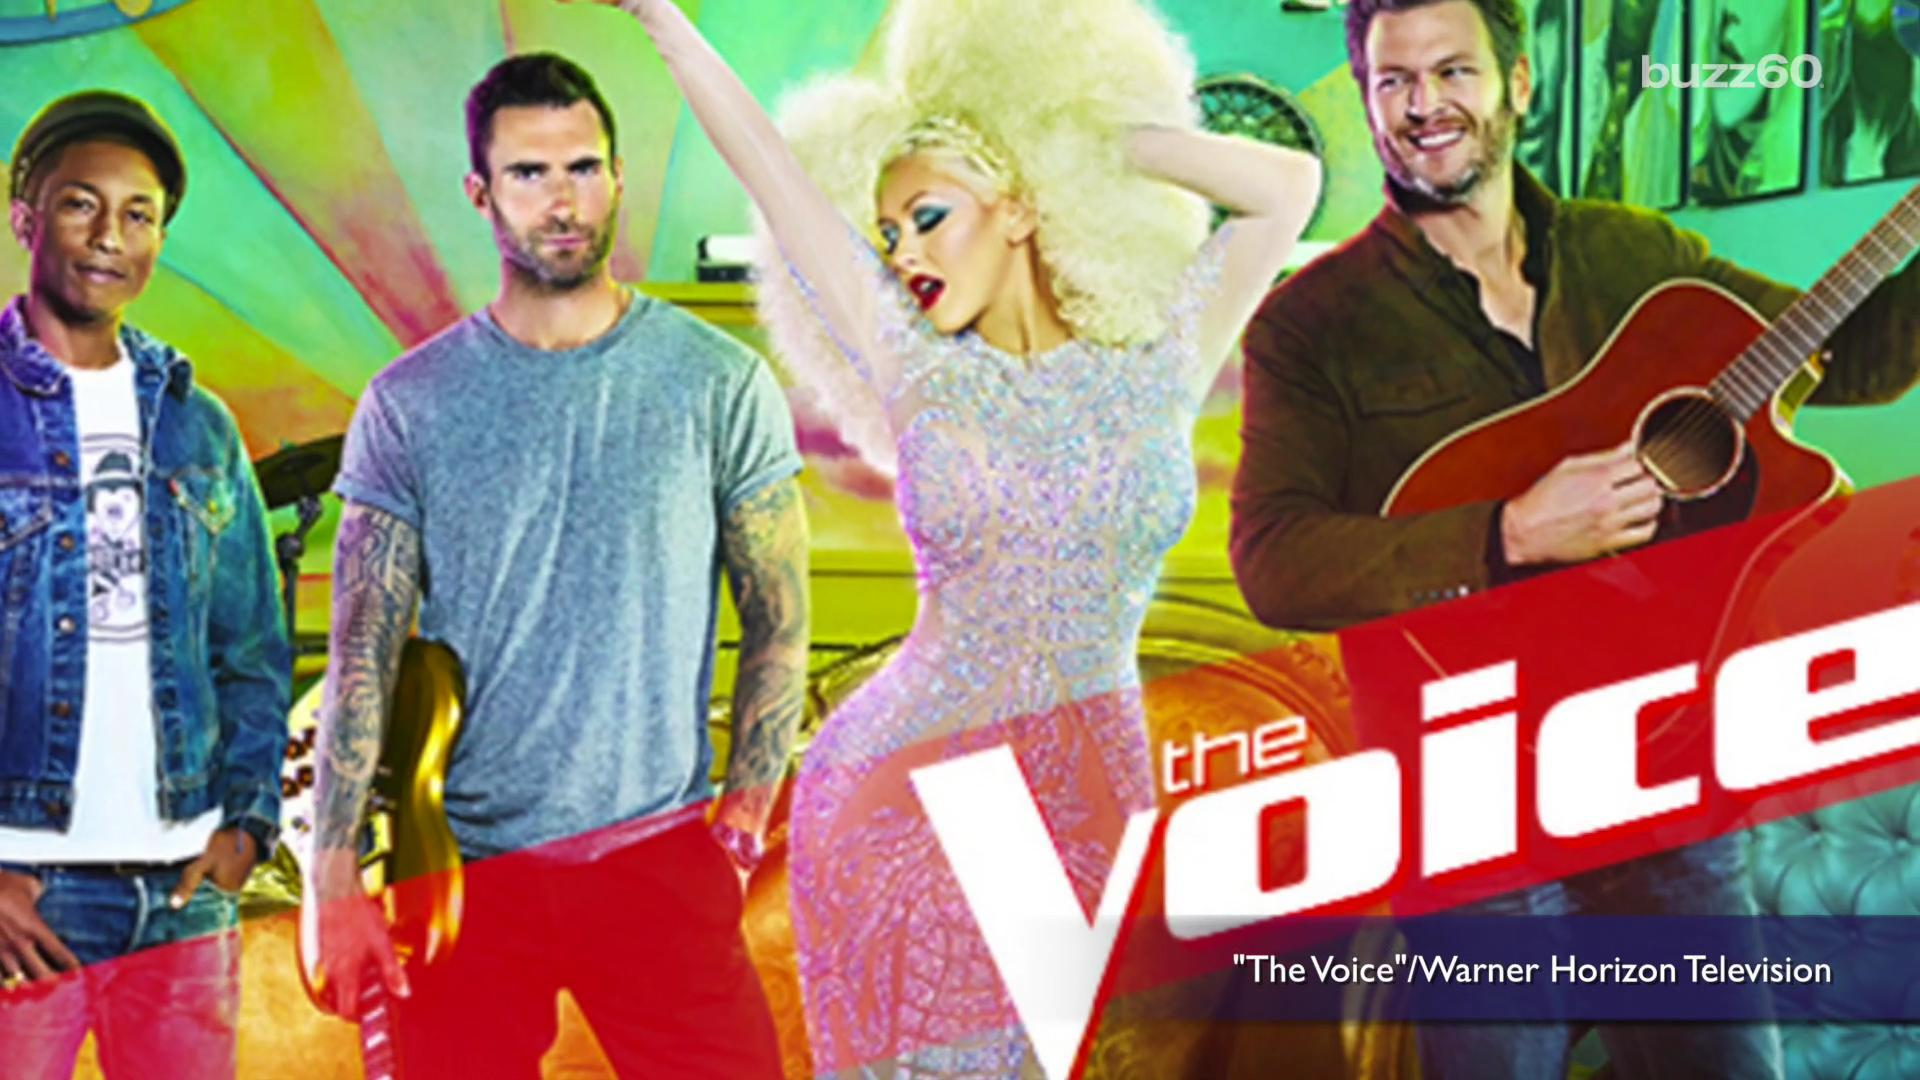 Find Out Who's Worth The Most Out Of 'The Voice' Judges